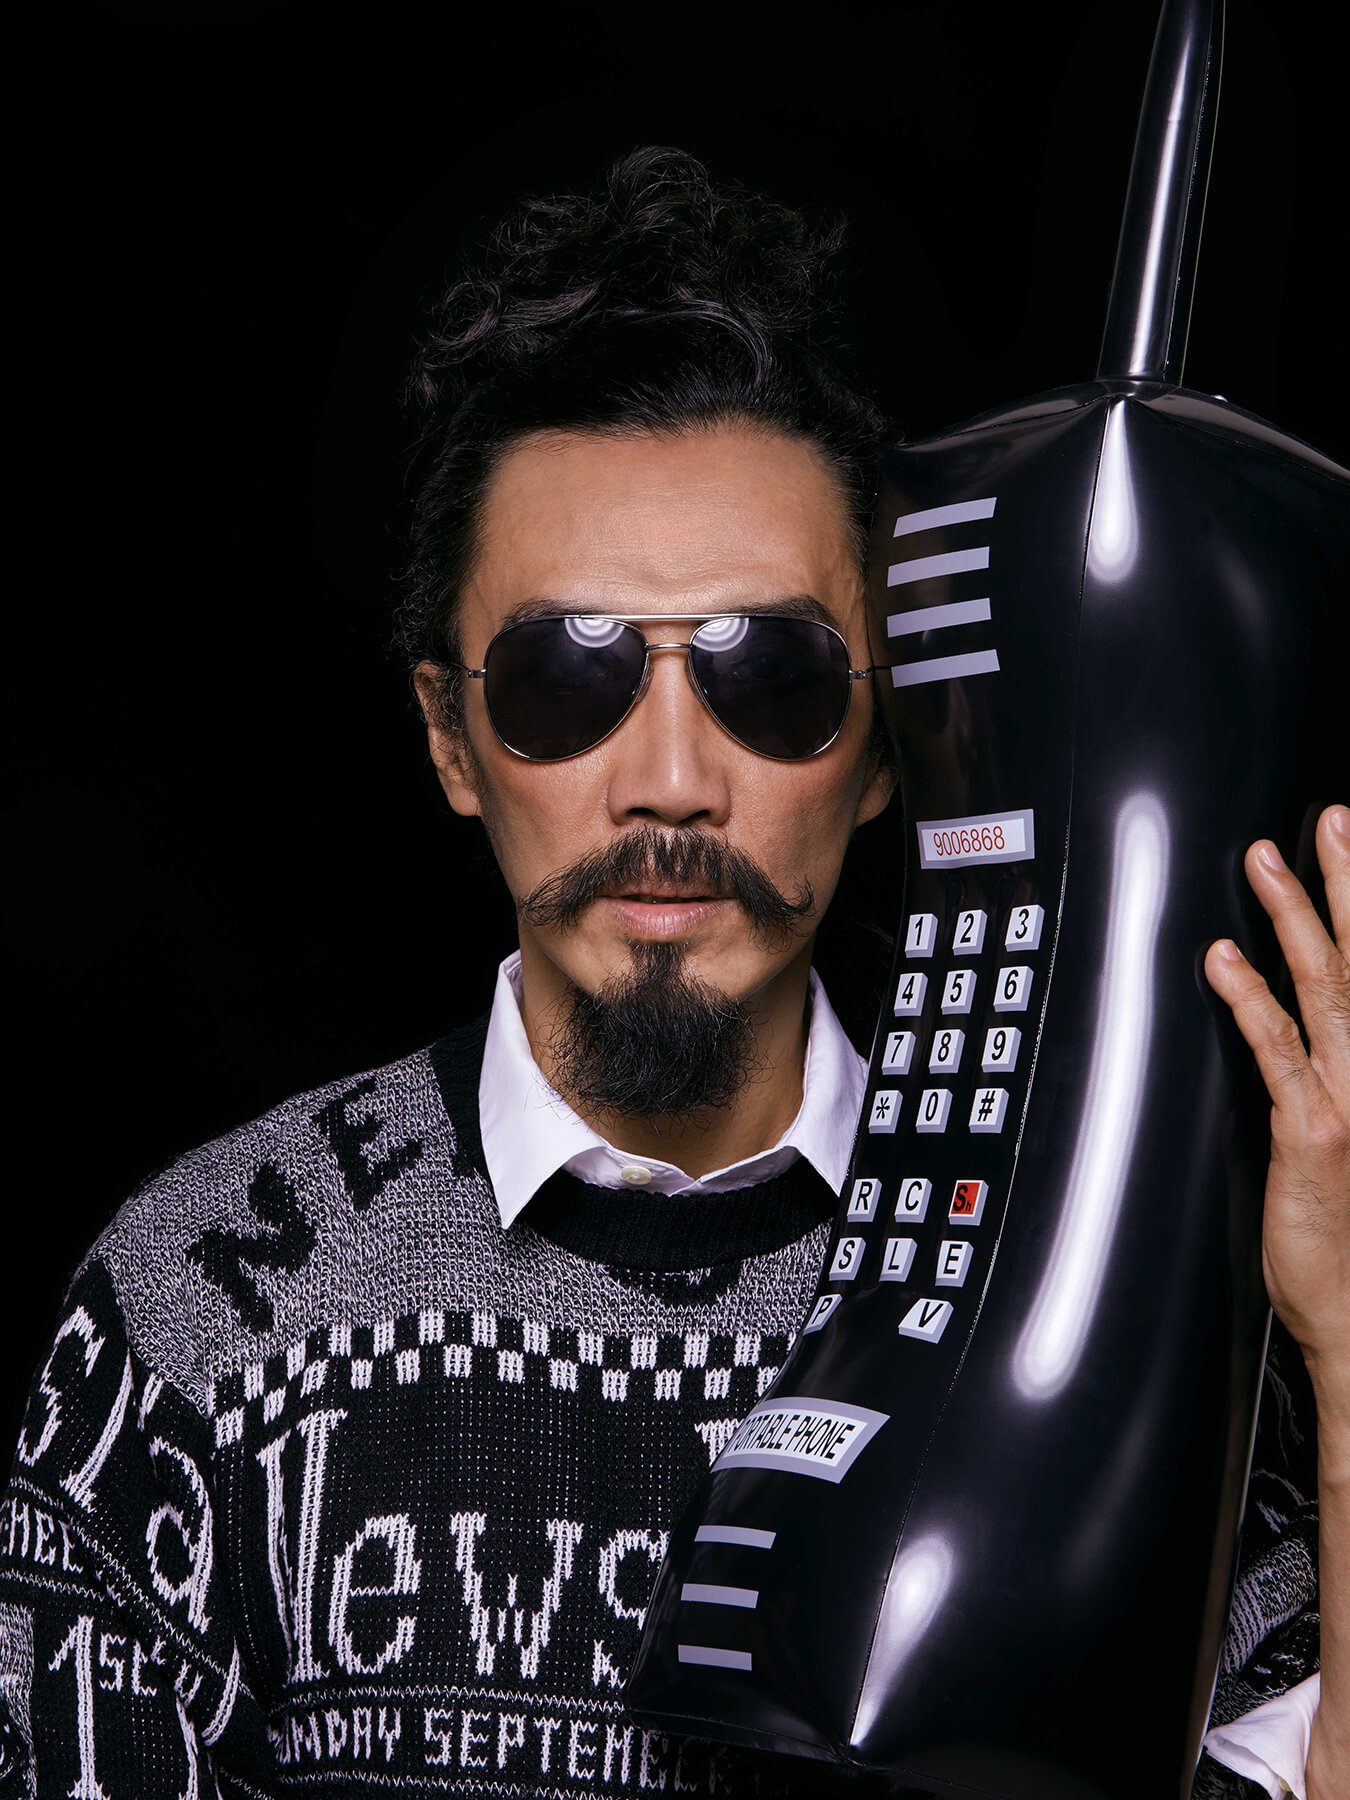 17 Nov 2017 Derong is holding a huge inflatable mobile phone